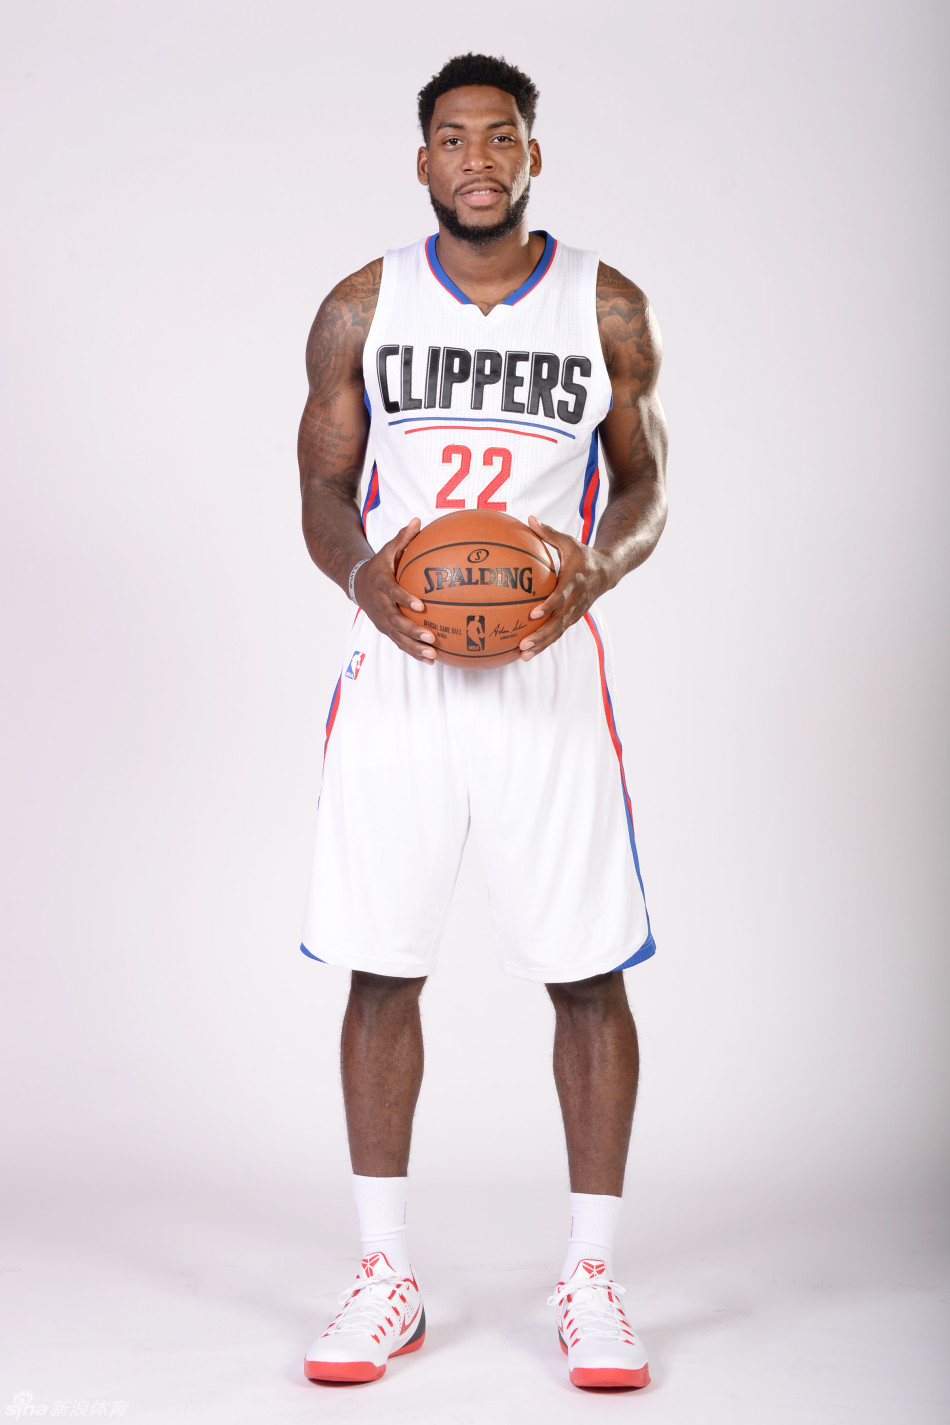 Clippers calm makeup Josh Photo